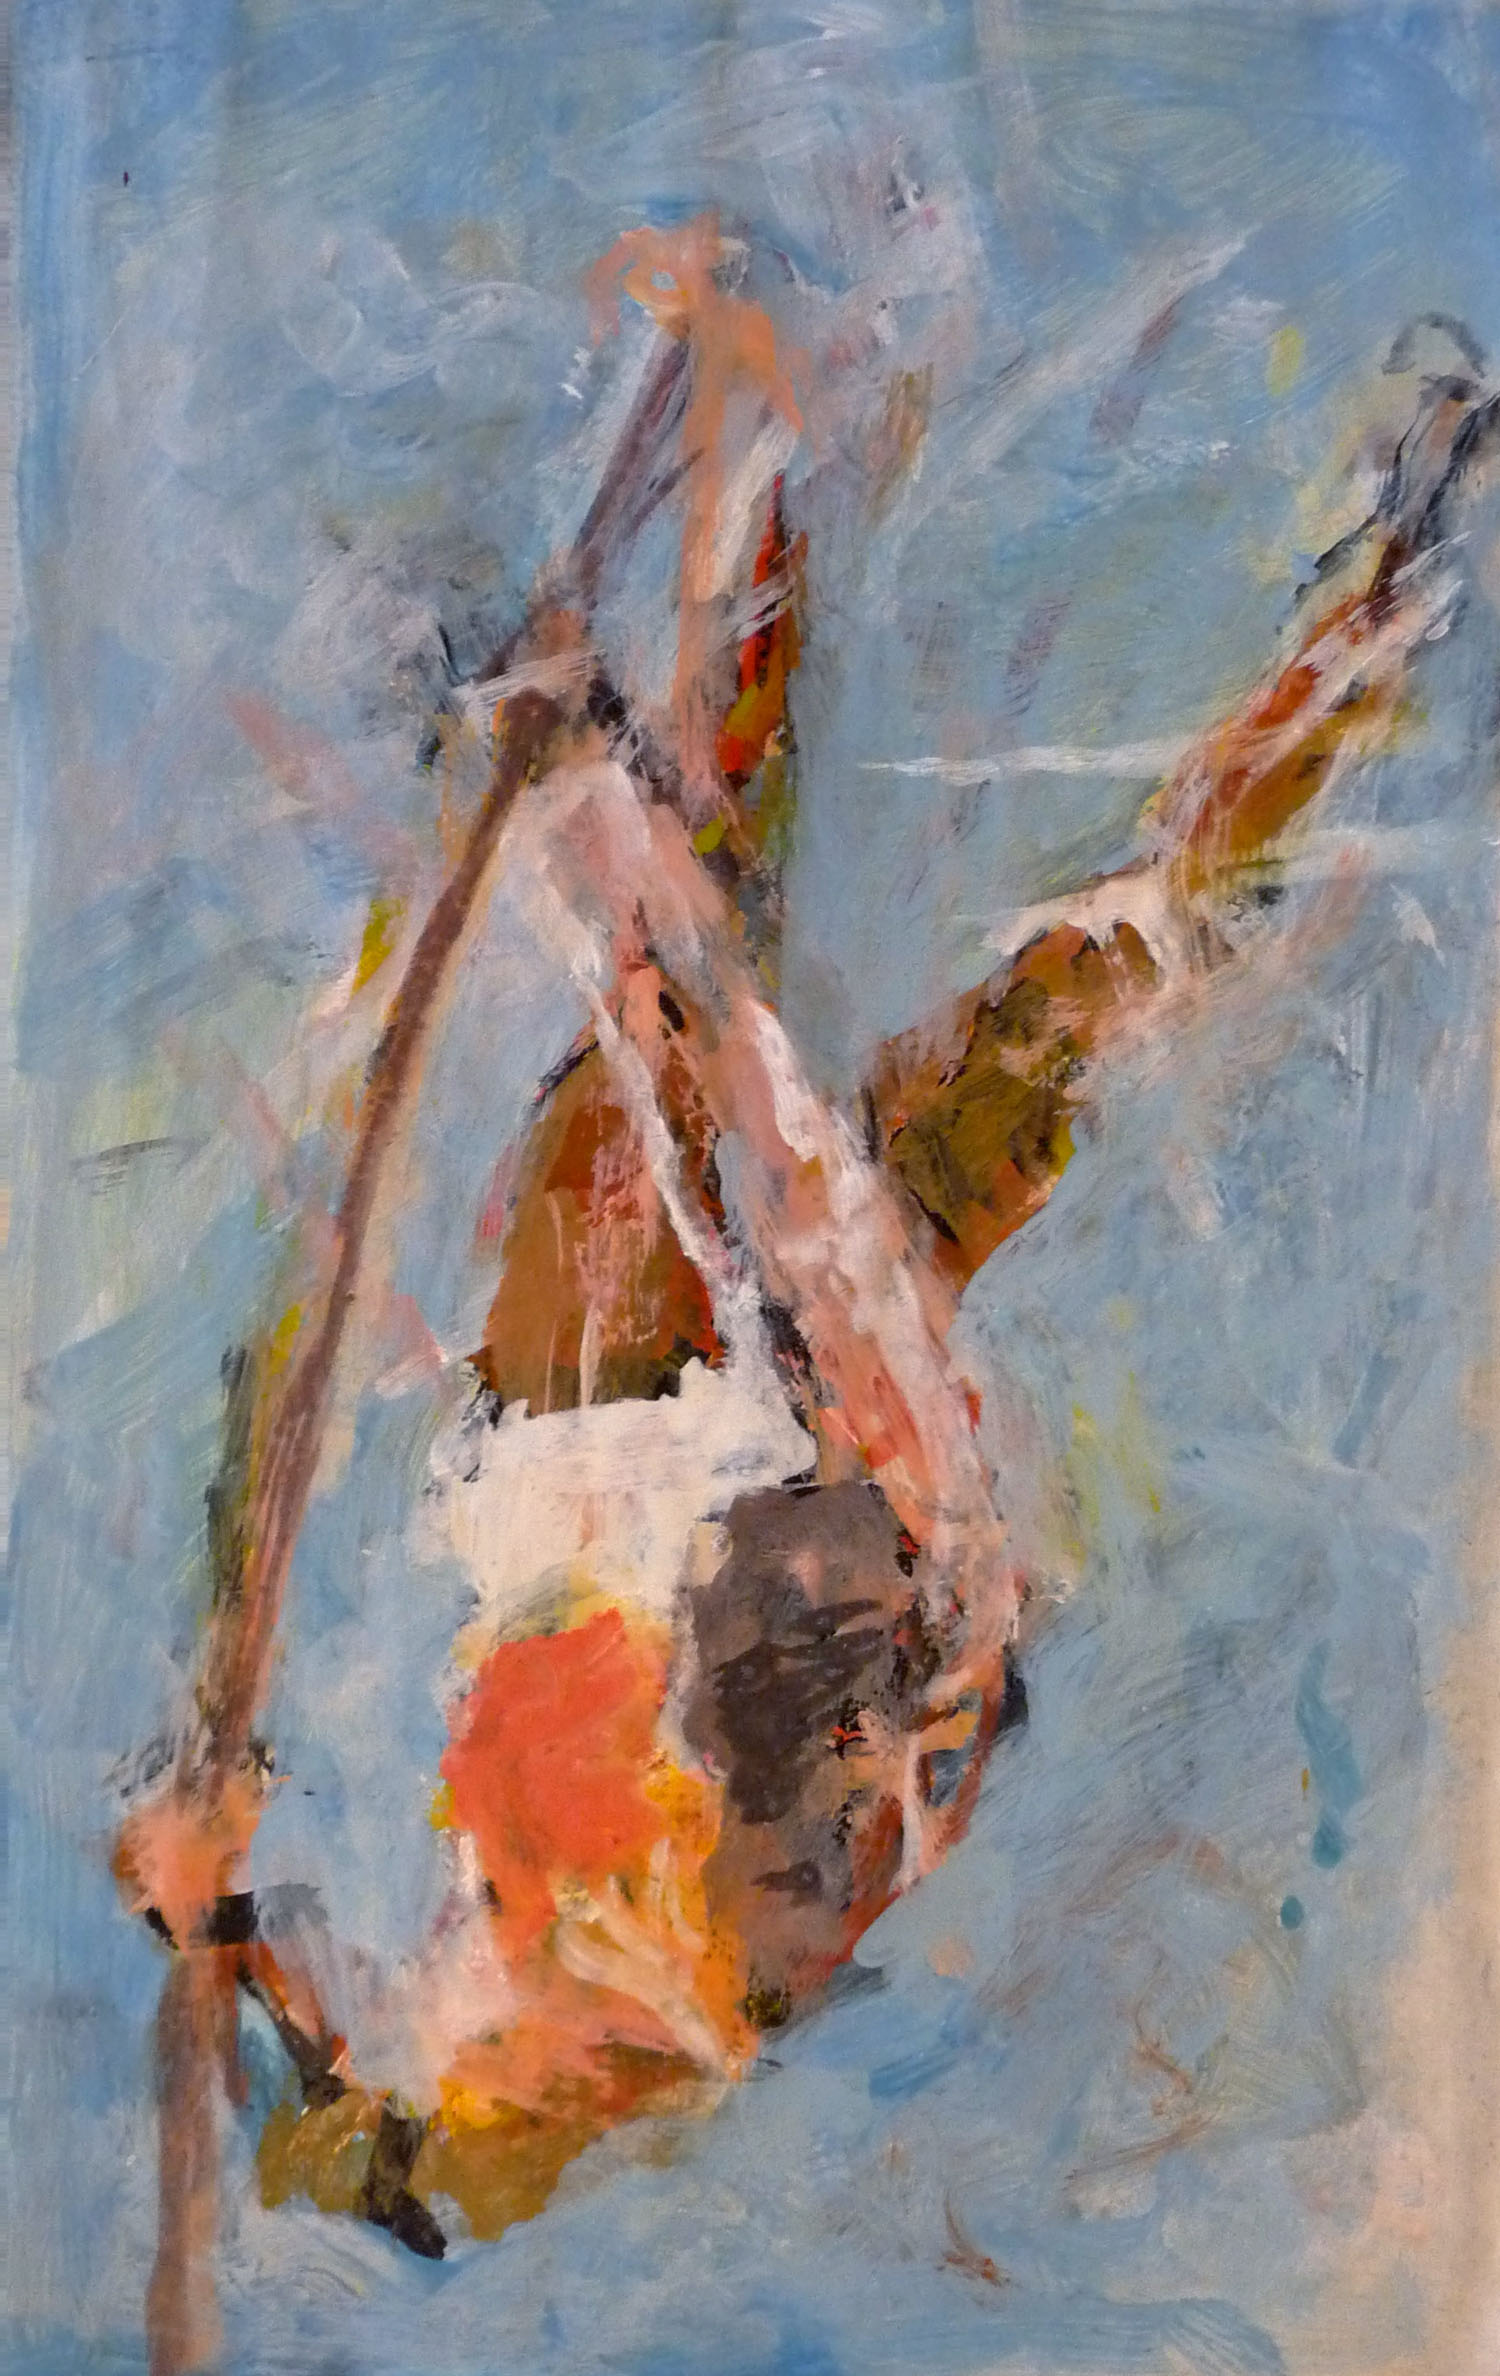 Joseph O'Connor_-_Pole Vaulter_acrylic on paper_26 x 23cm.jpg